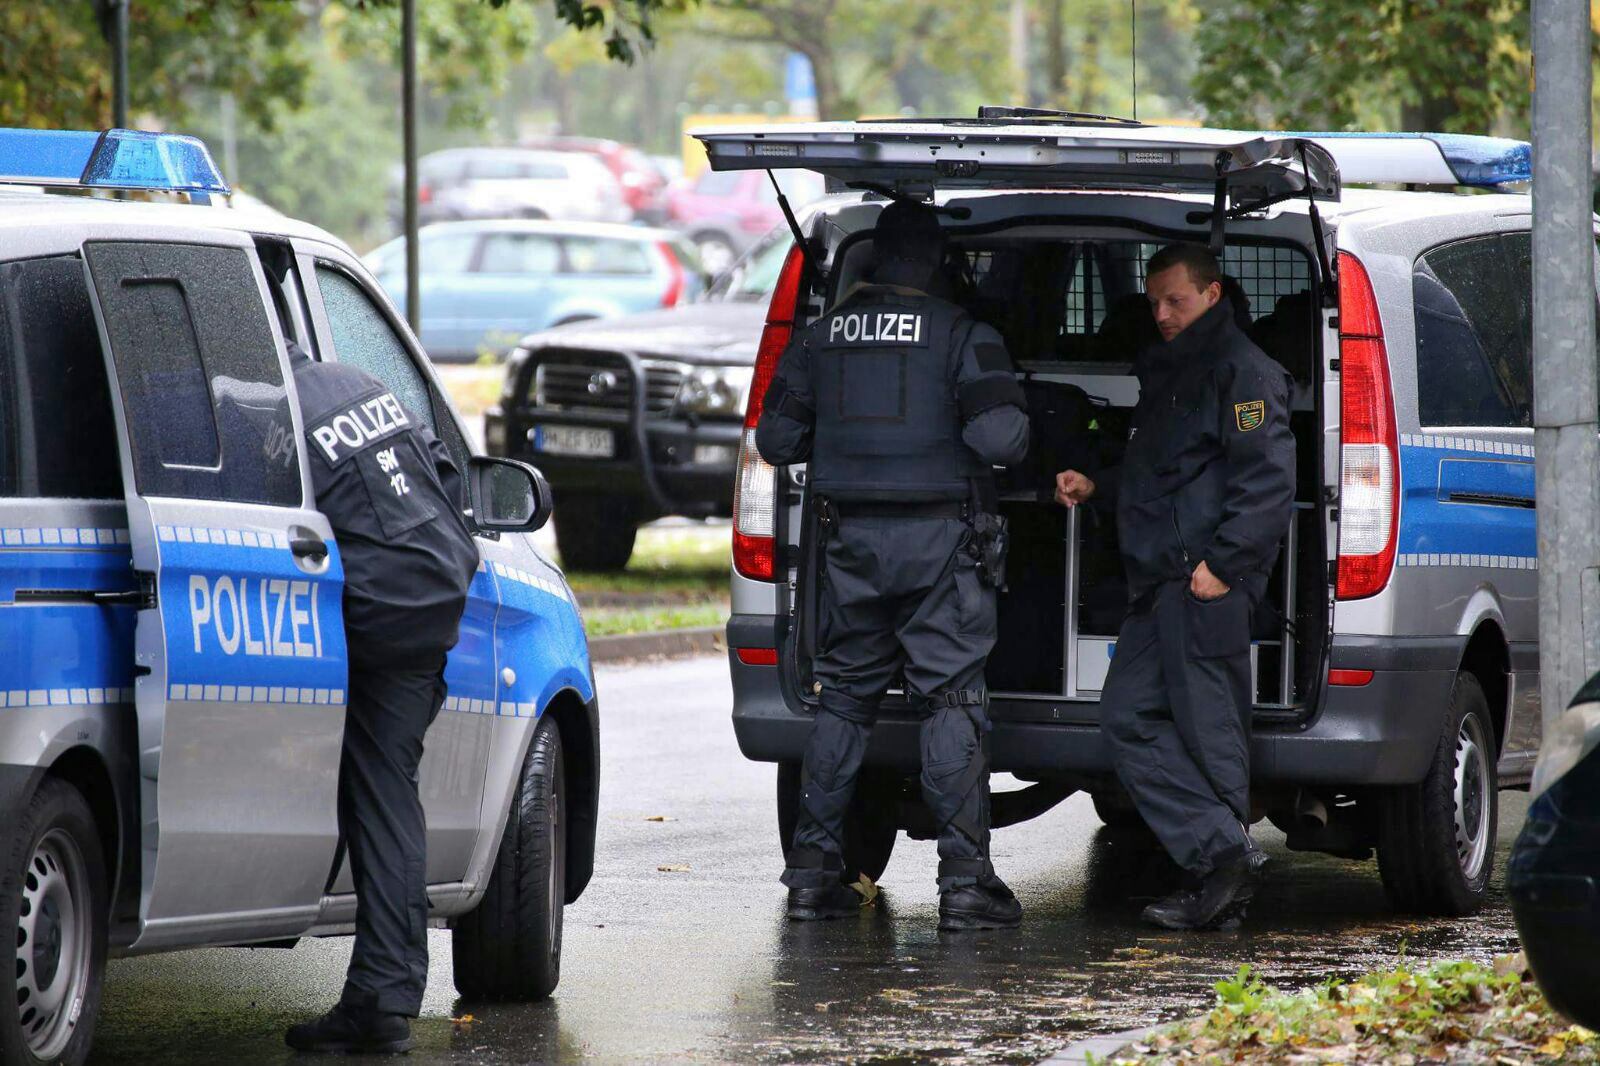 epa05576149 Police officers in Chemnitz, Germany, 8 October 2016. A large-scale police operation is underway in response to a possible bomb attack in an area of Chemnitz. EPA/BERND MAERZ